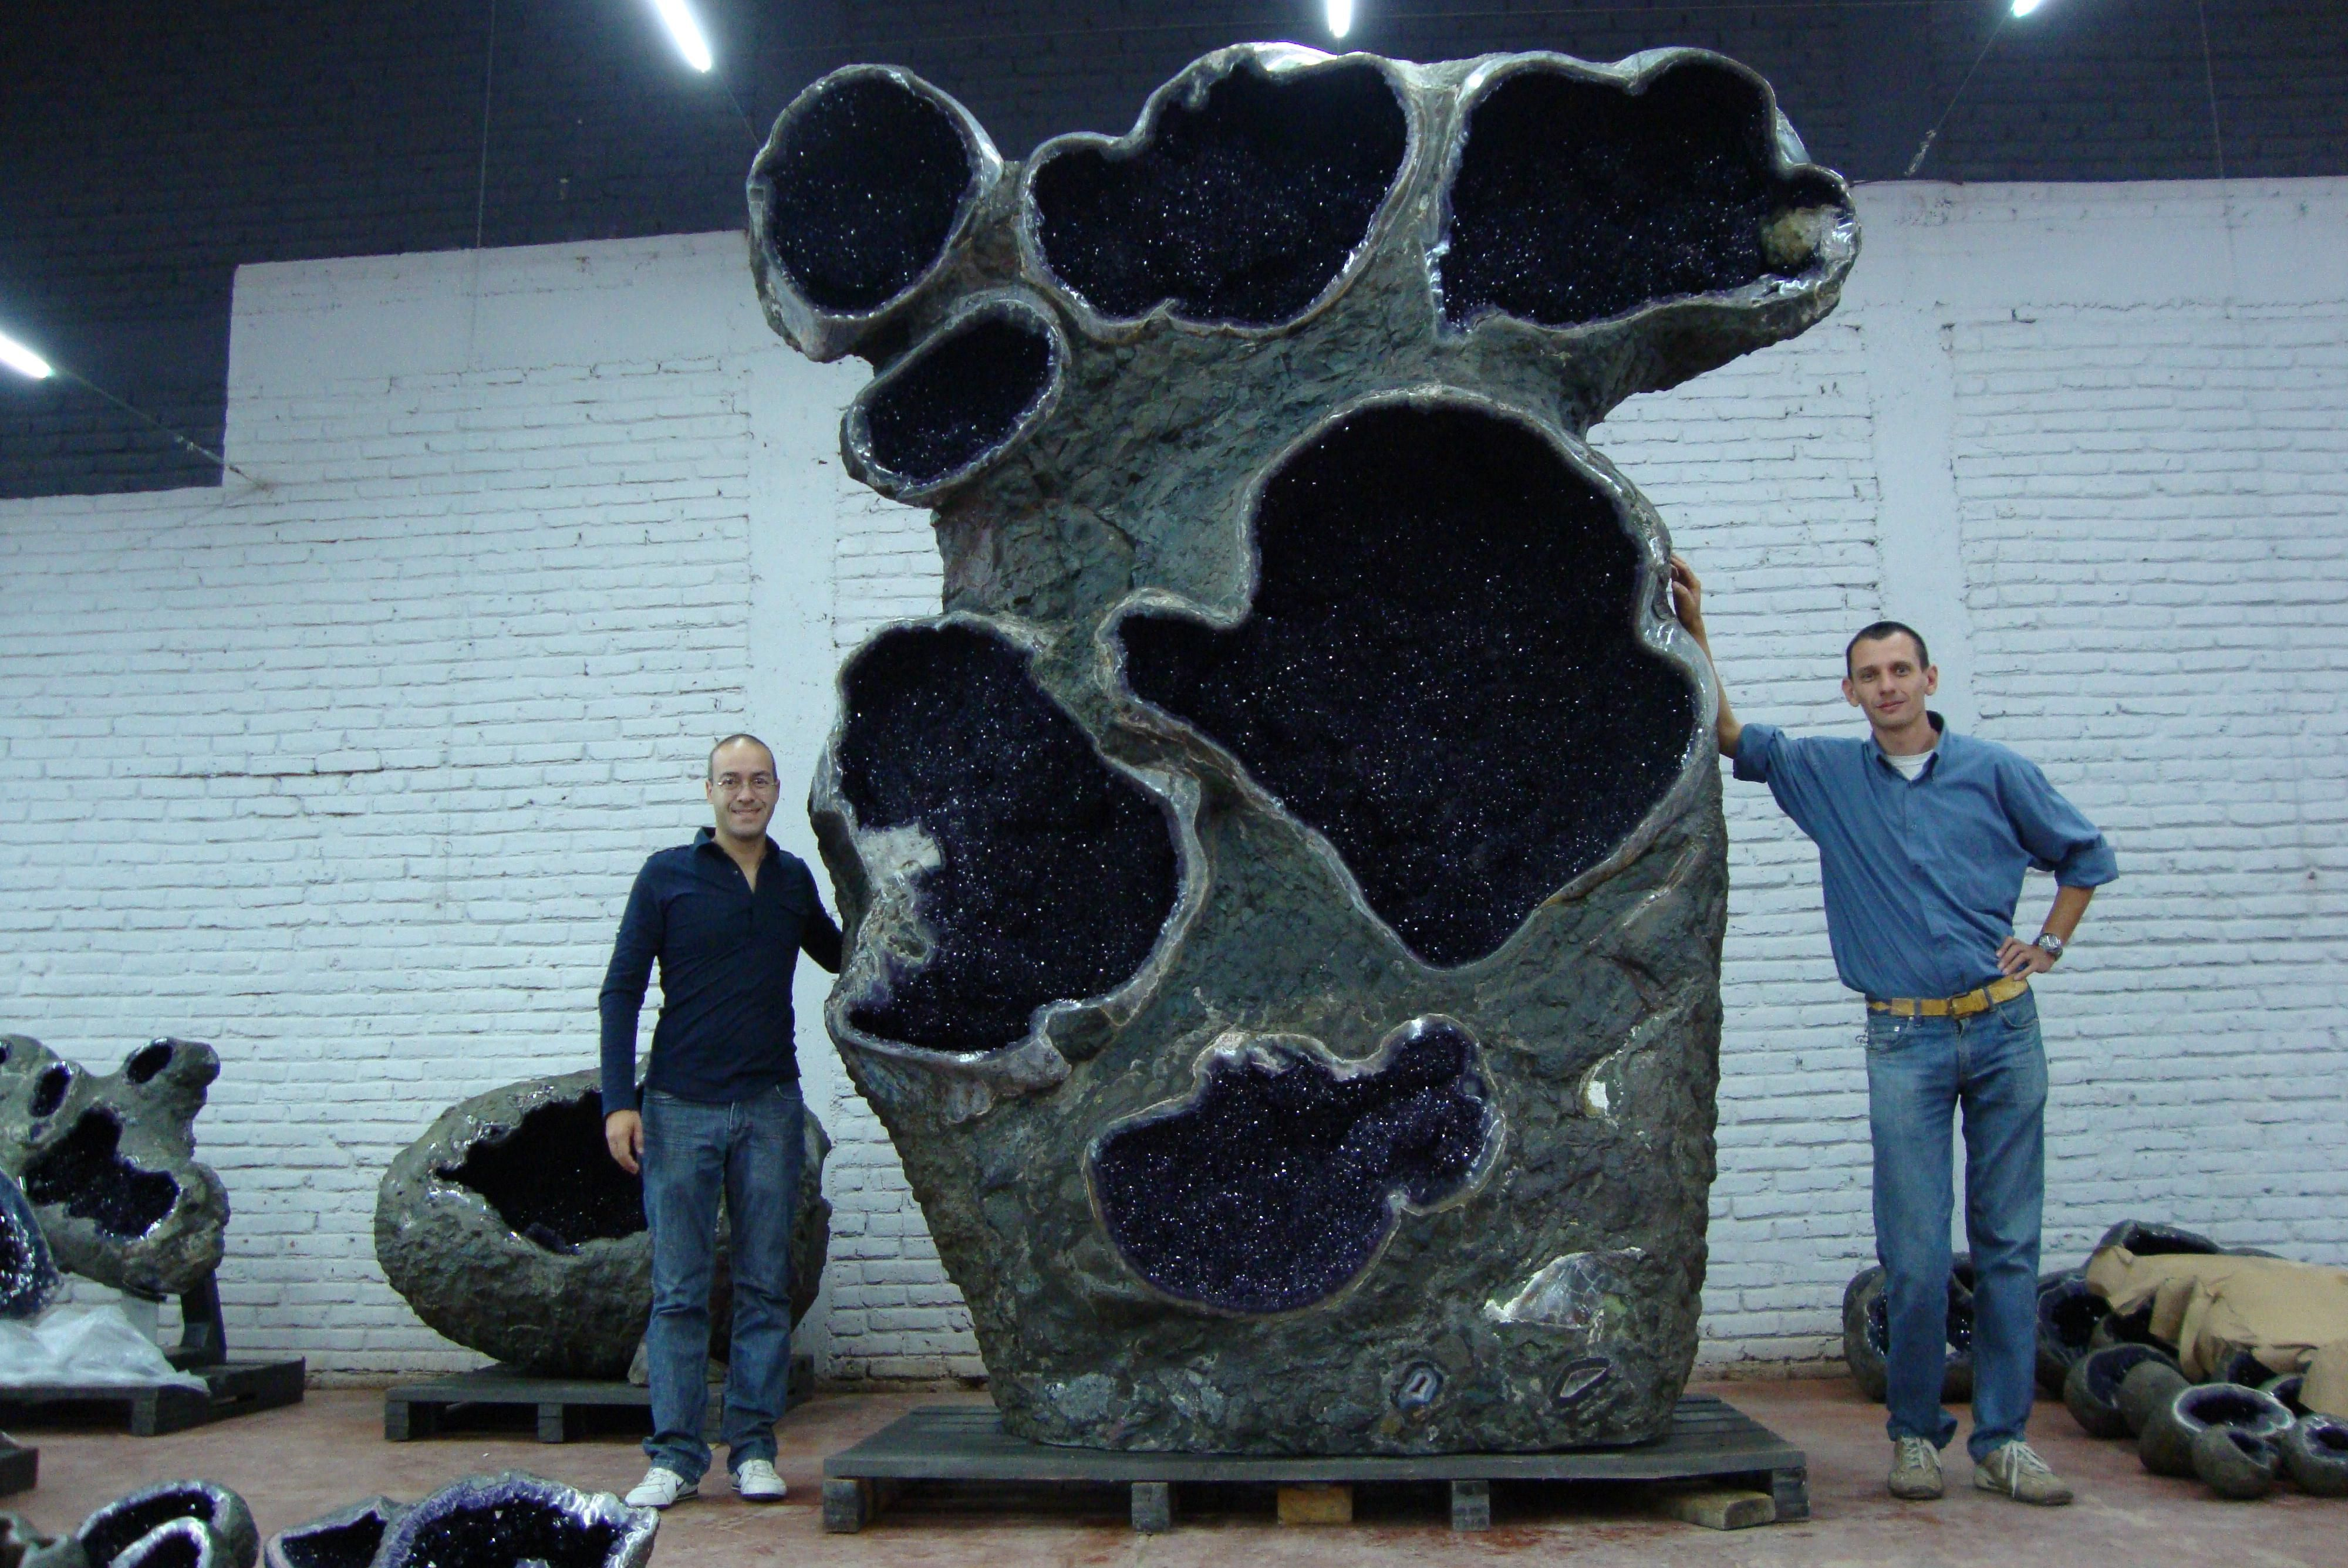 PsBattle: These dudes standing next to a giant amethyst geode